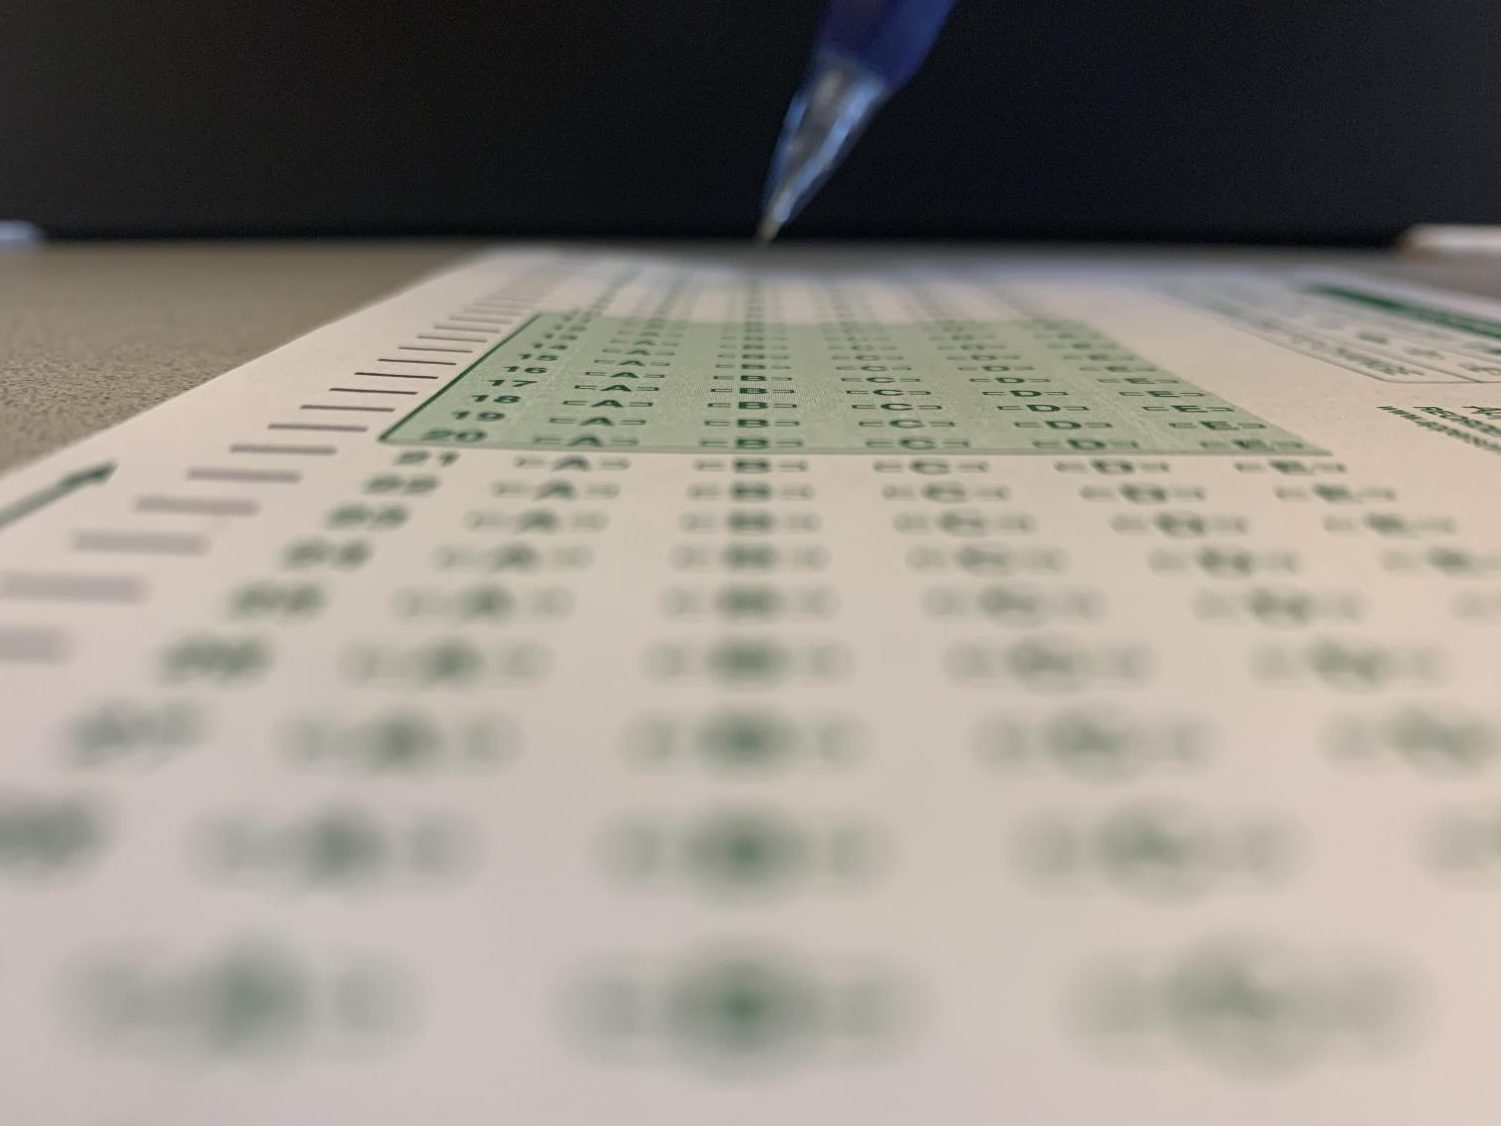 Pencil poised to take a test.